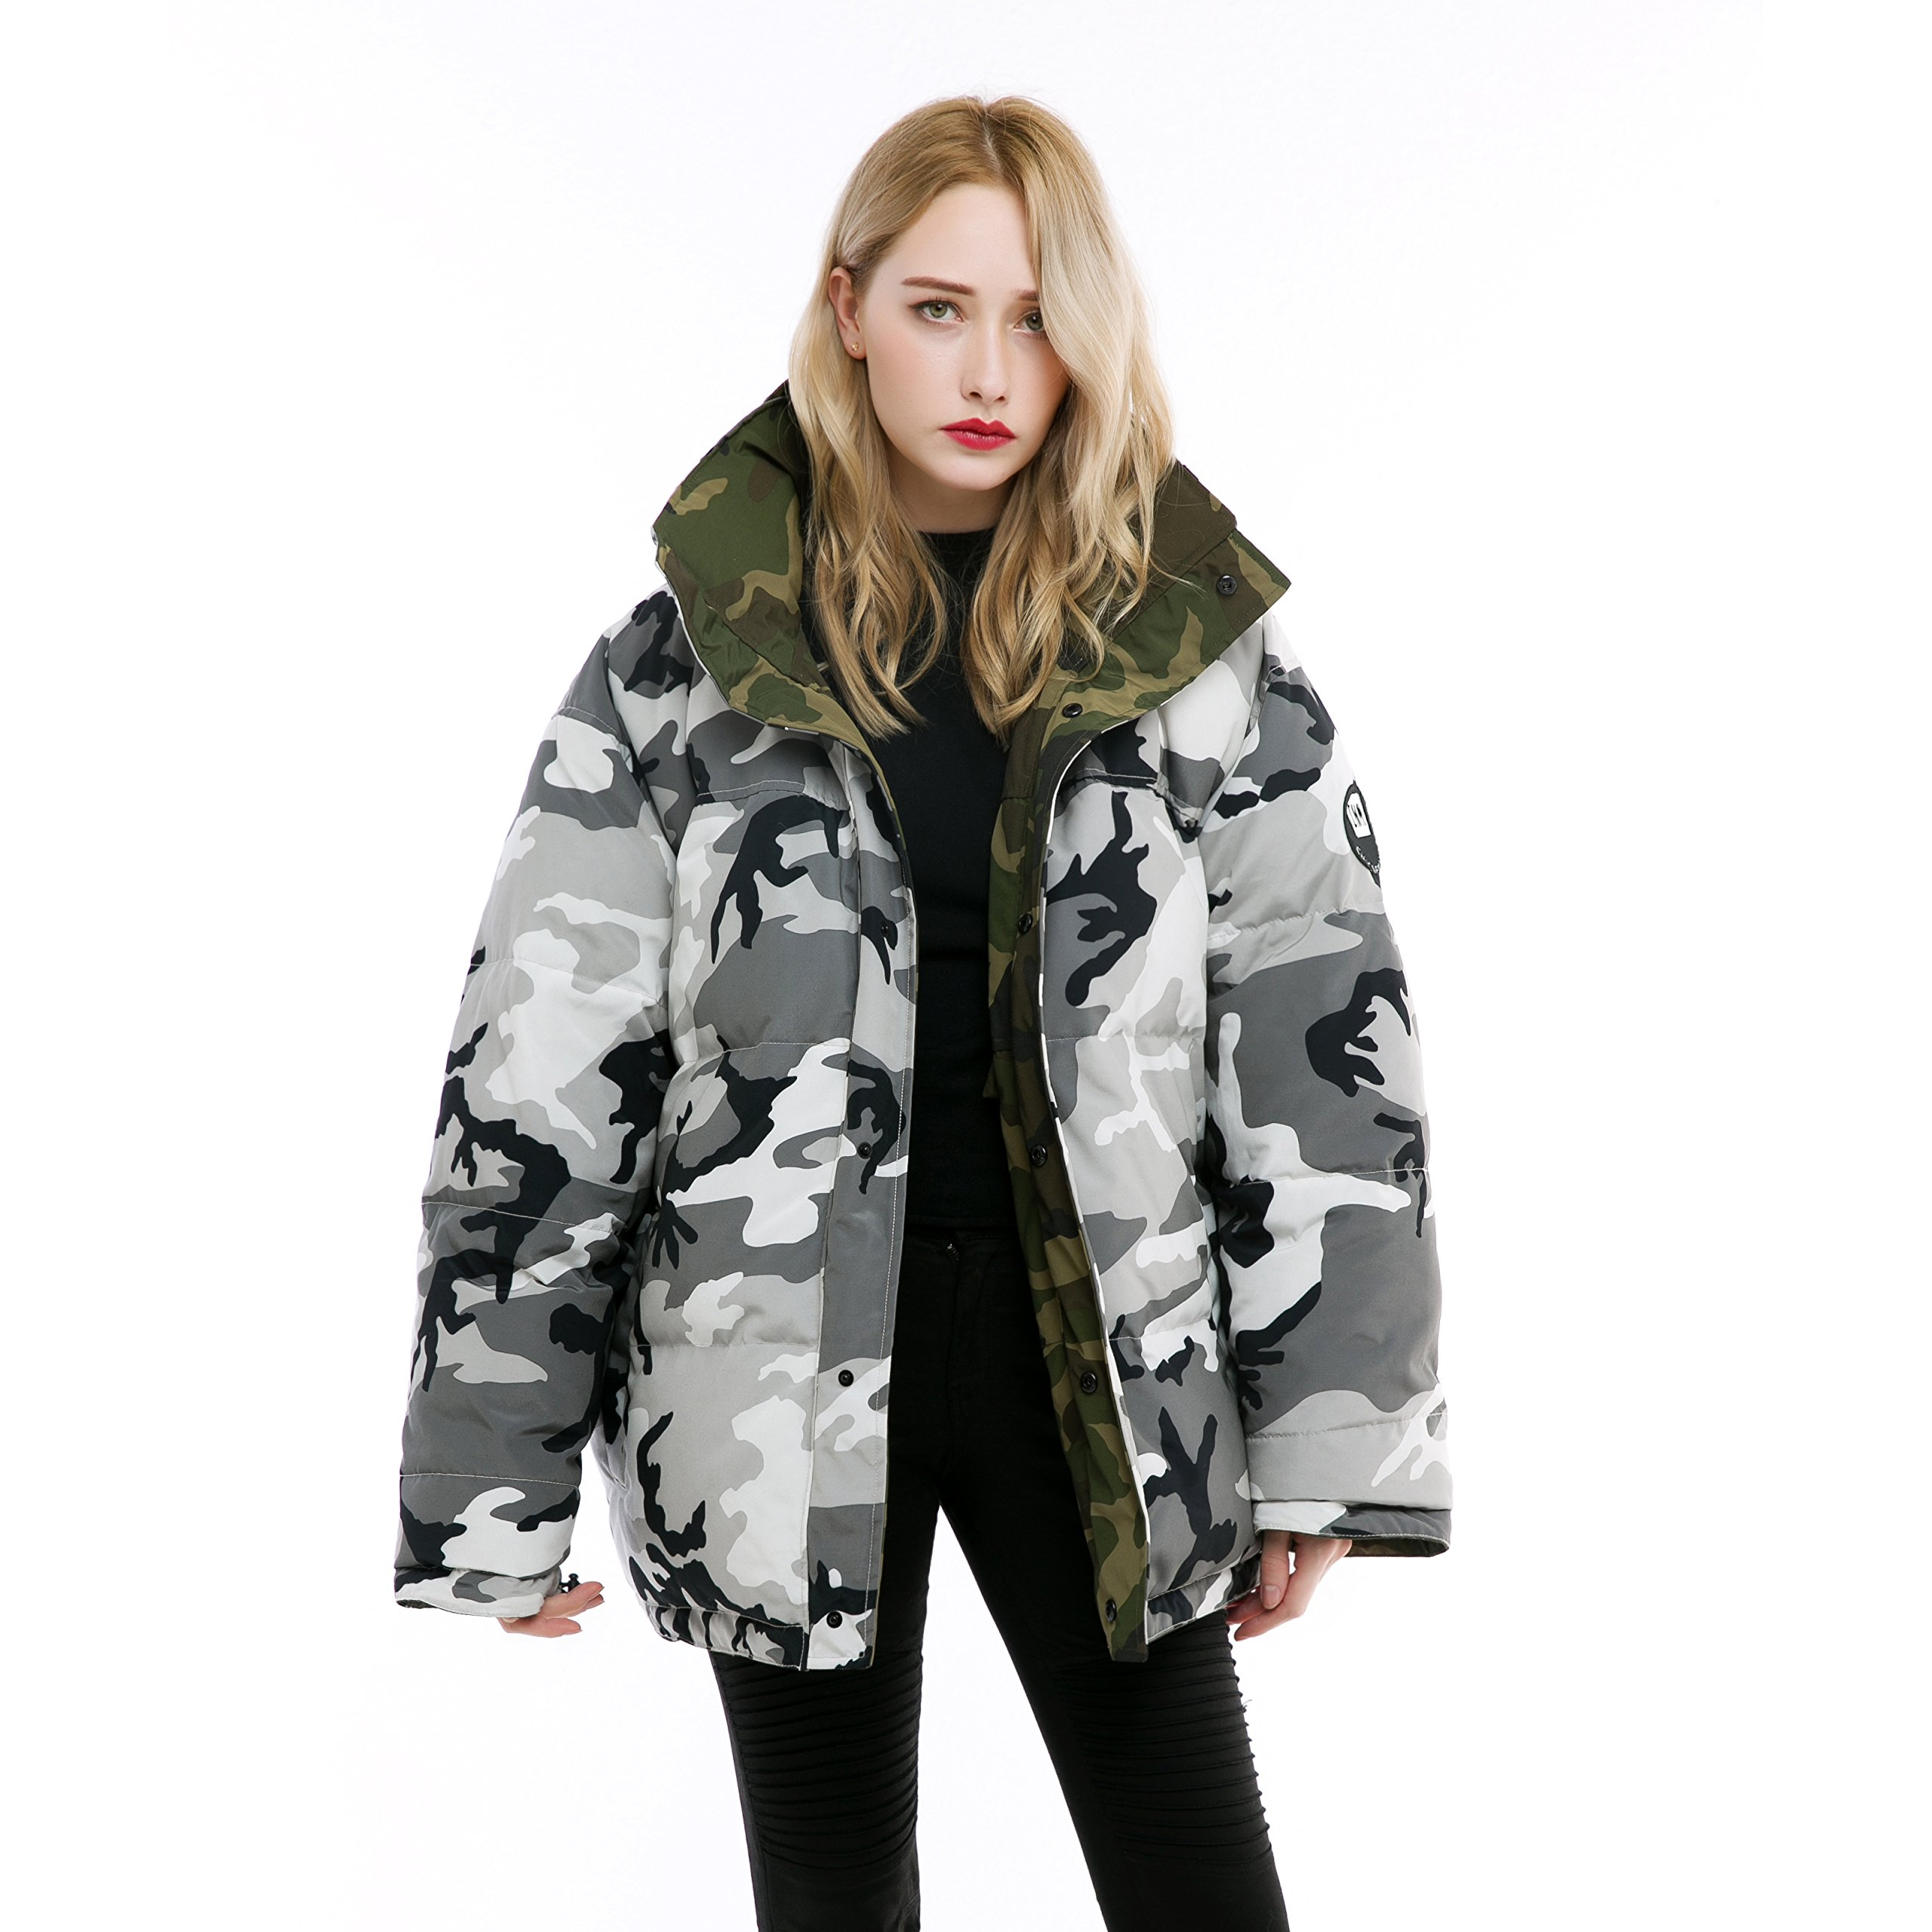 Fashion Womens Double-Sided Camouflage Down Jacket (The Warmest Fashion Gift)(Delivery within 15 days)